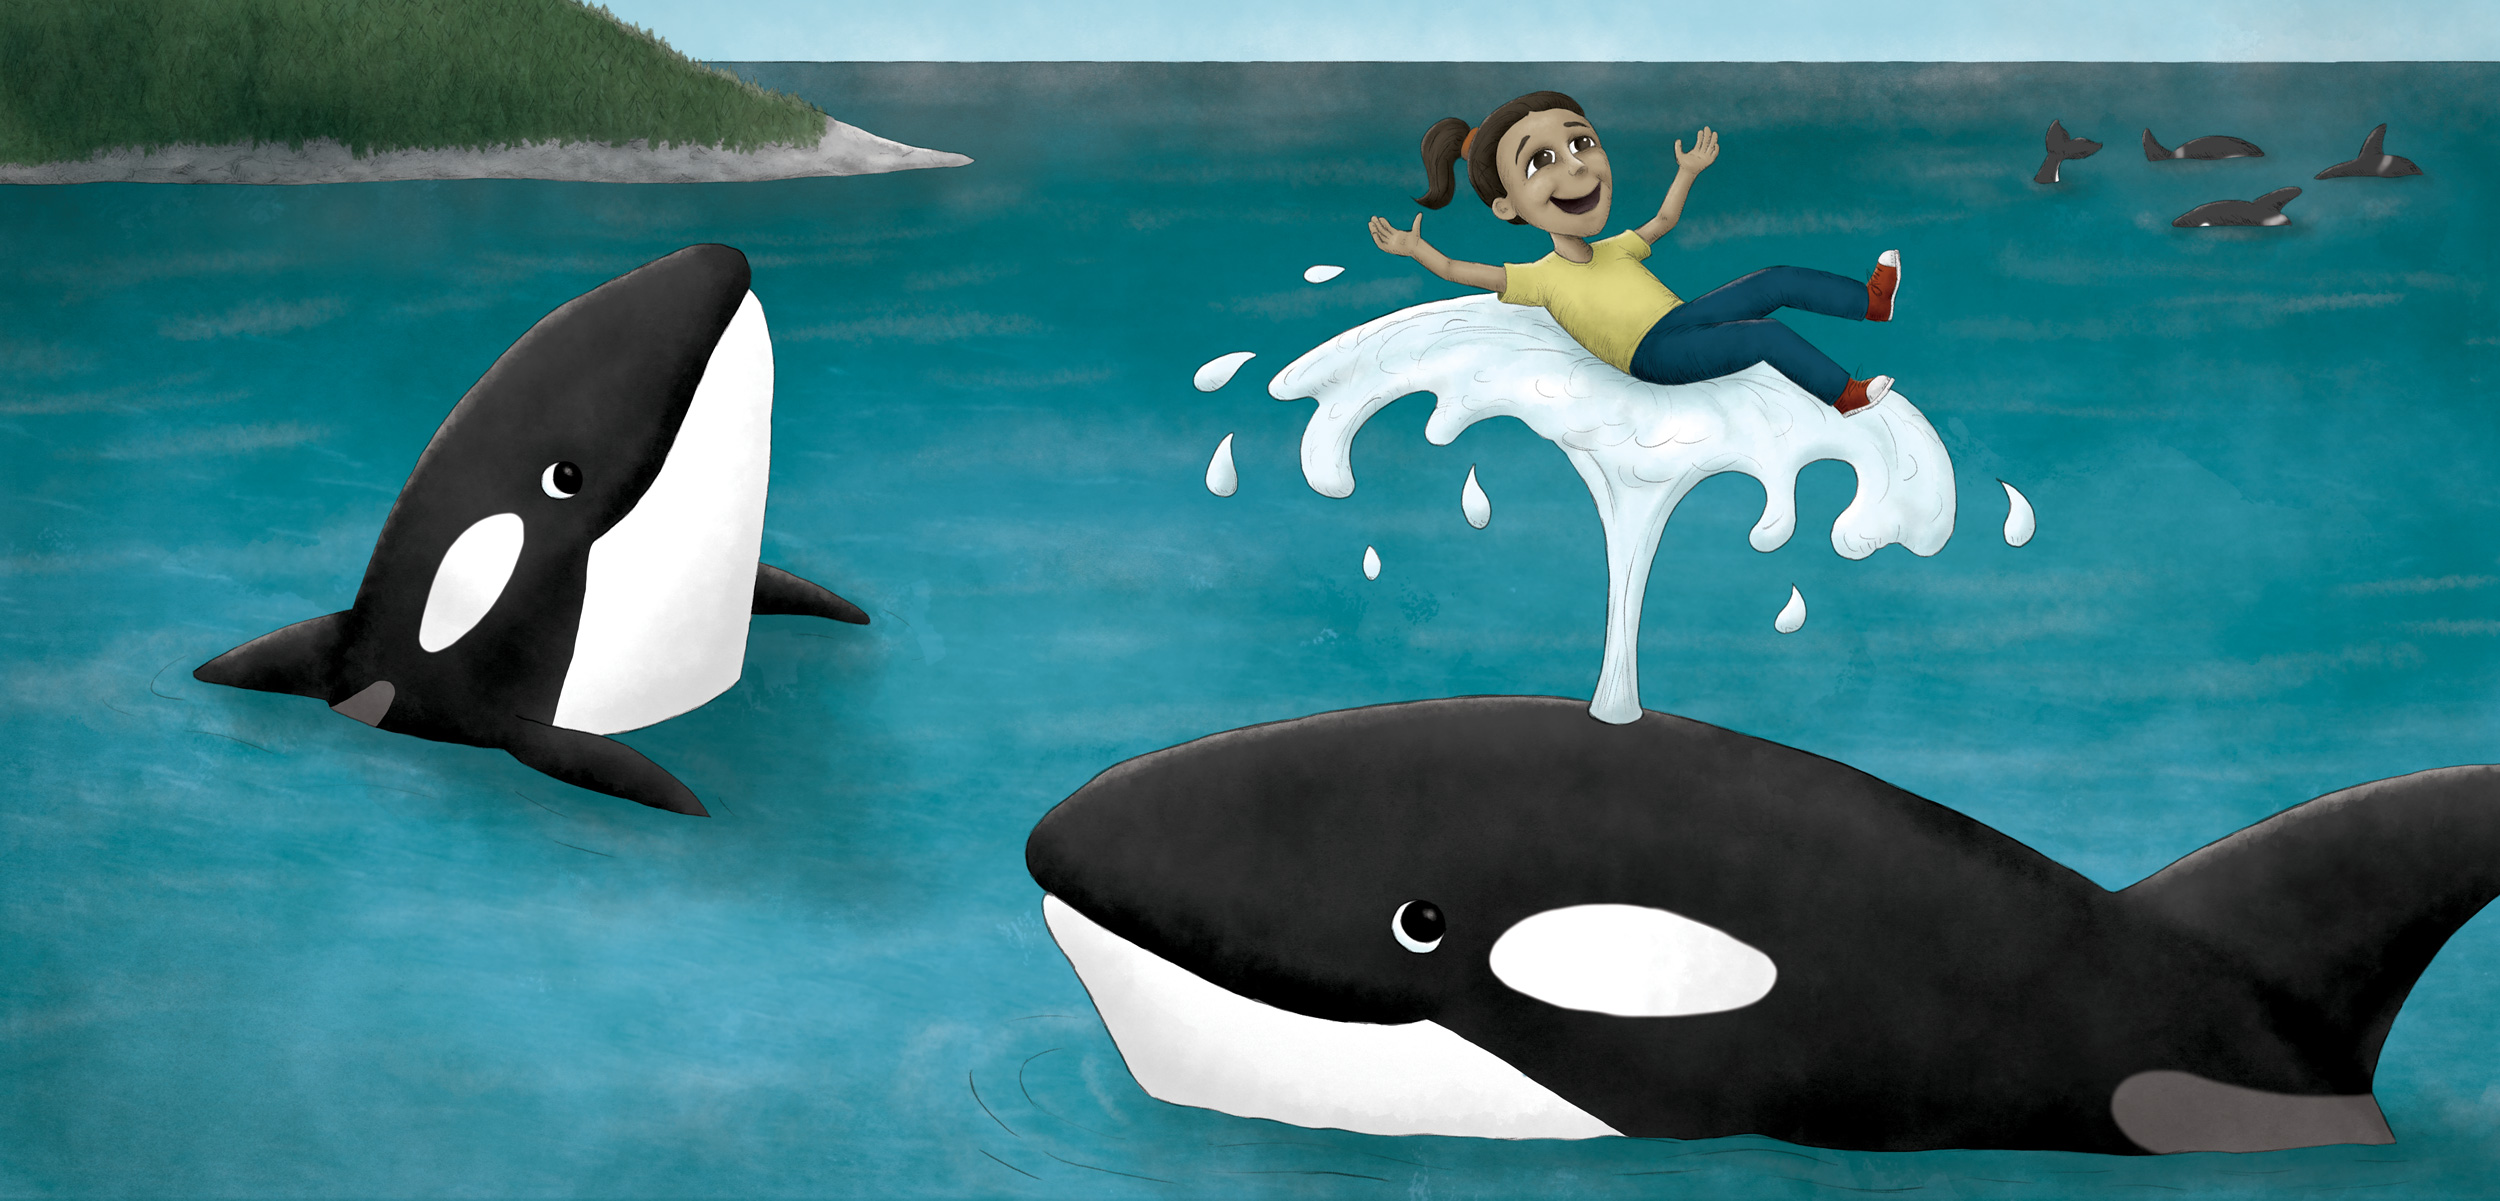 illustration showing a child riding a killer whale's spout